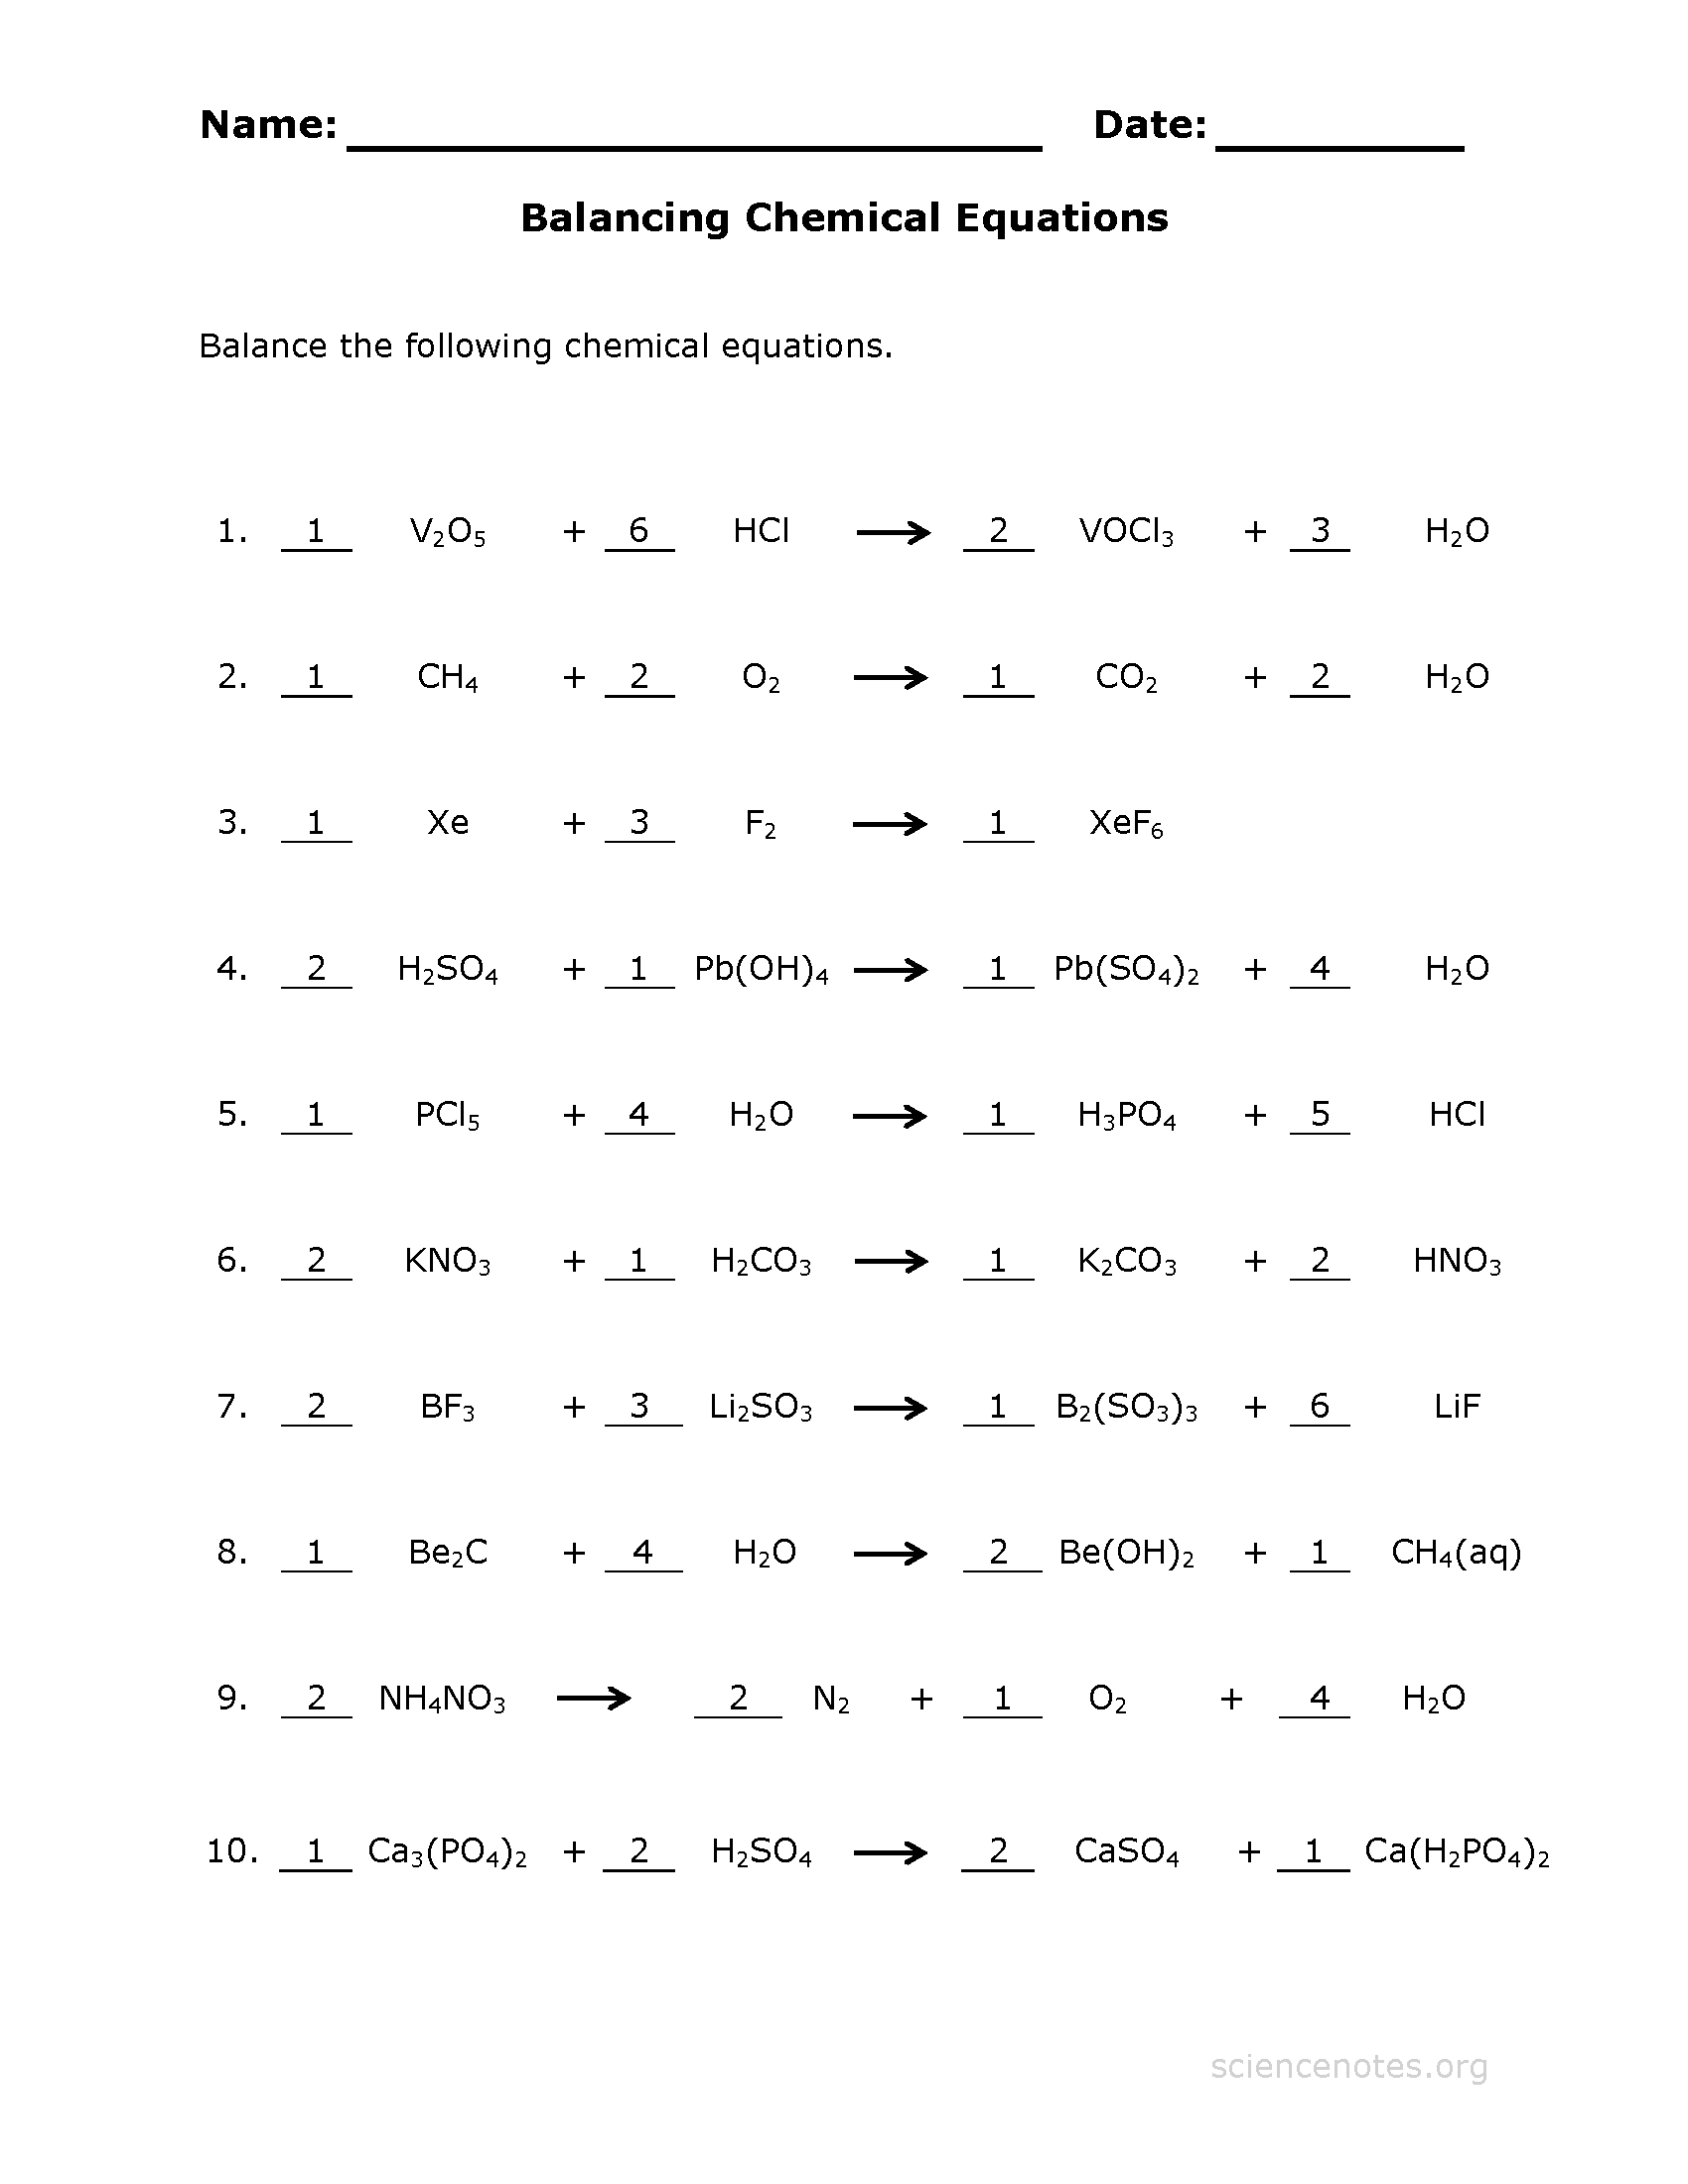 Balance Chemical Equations Worksheet 3 Answer Key Science Notes – Balancing Chemical Equations Worksheet 3